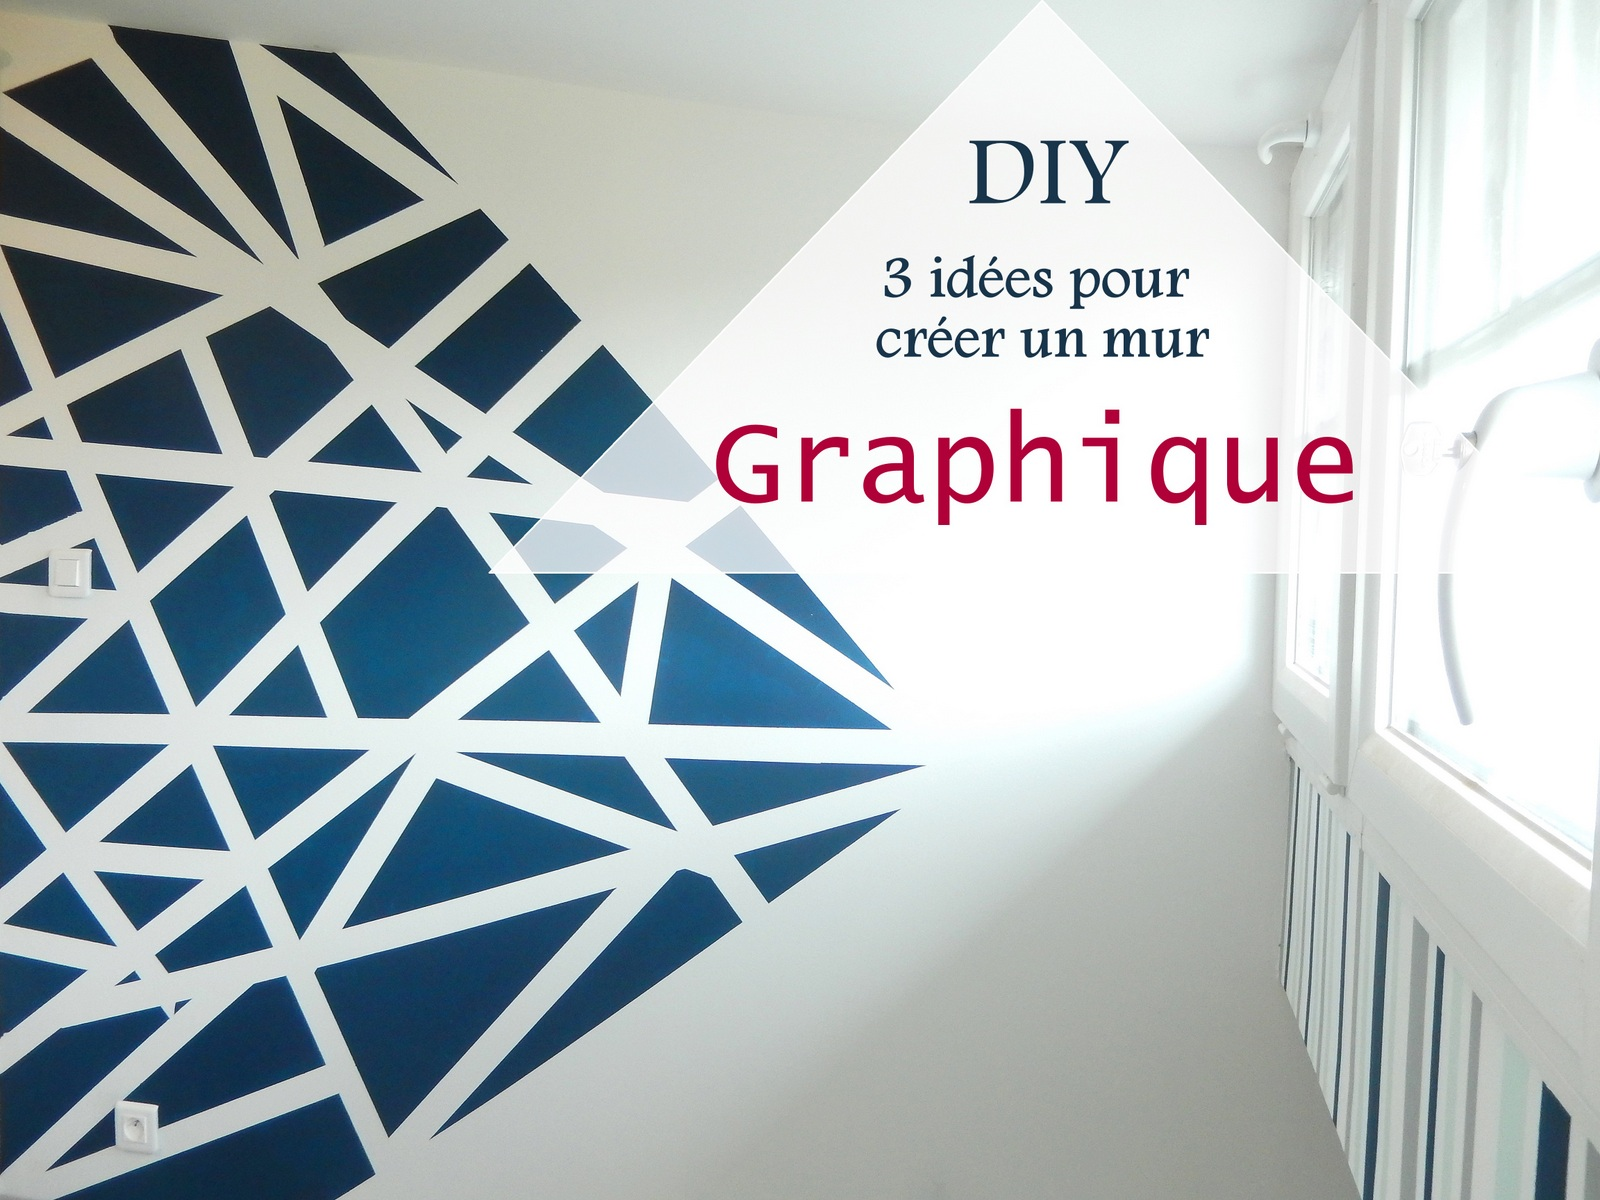 diy 3 id es pour cr er un mur graphique mon carnet d co. Black Bedroom Furniture Sets. Home Design Ideas